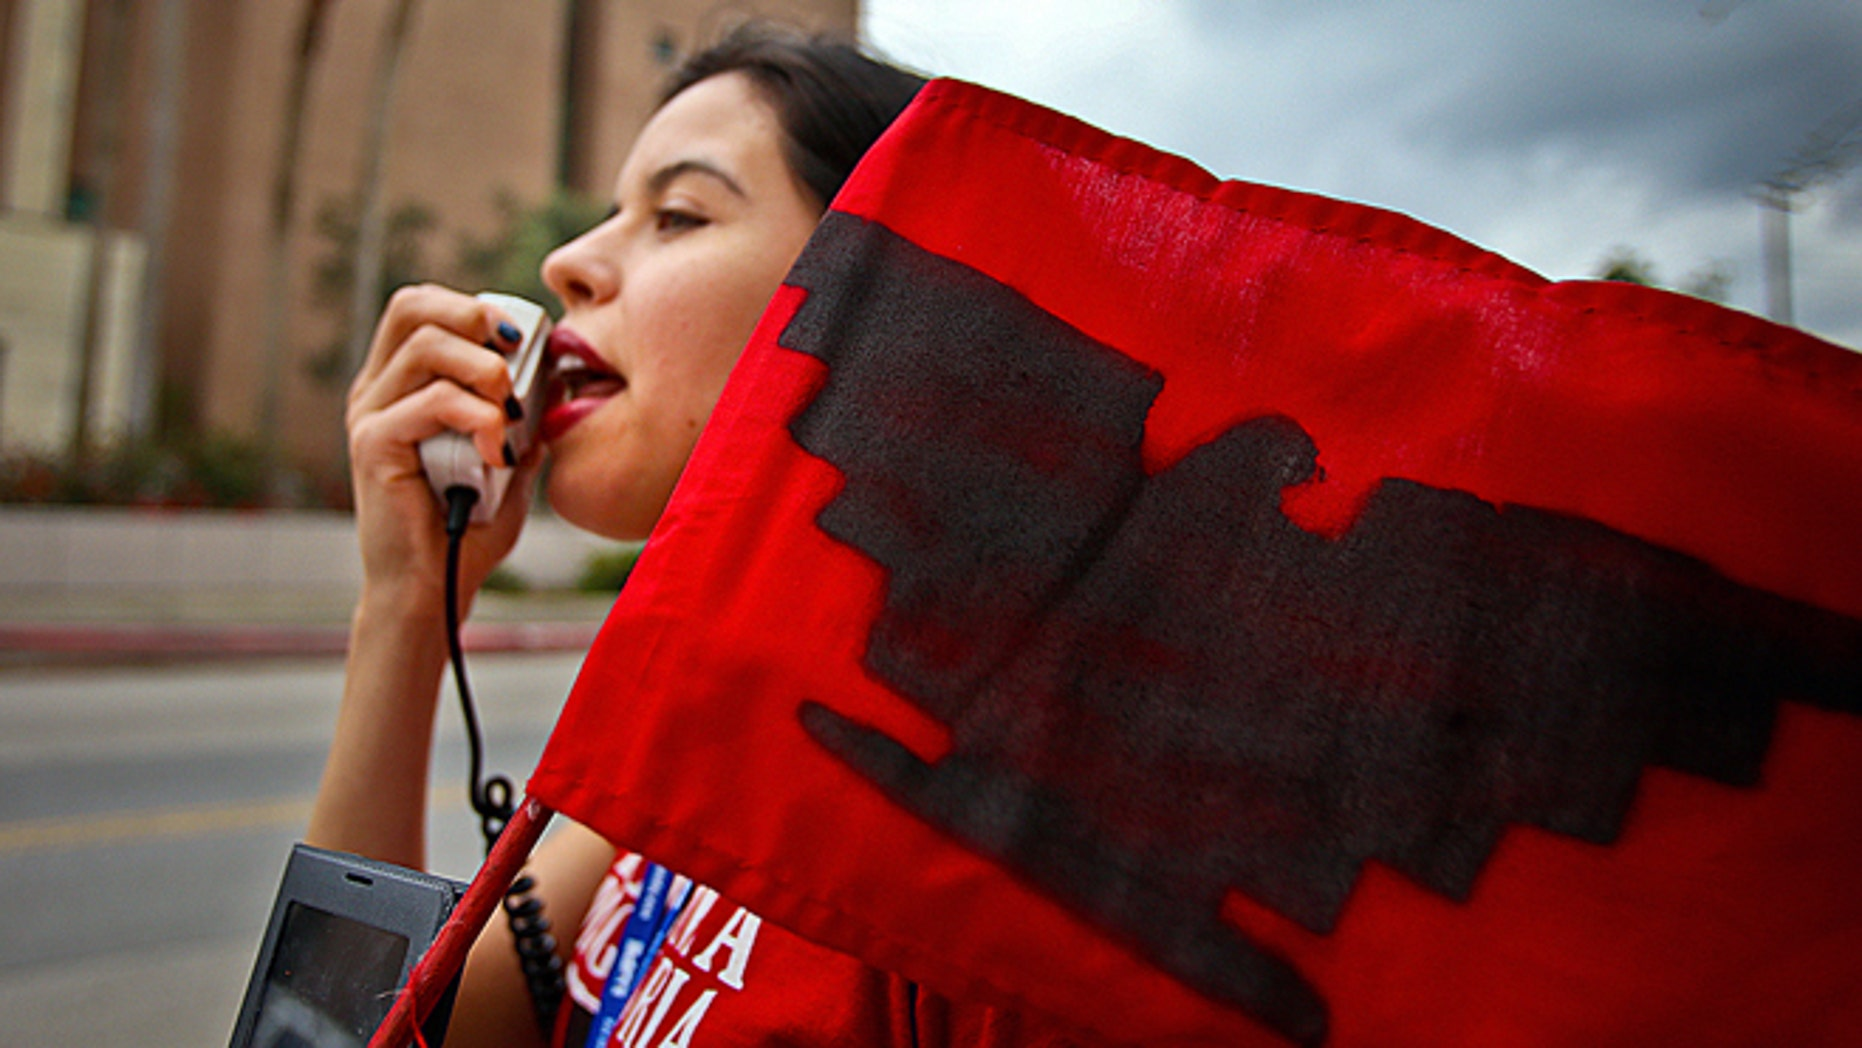 "Yvette Salinas, with L.U.P.E chants ""Education not Deportation"" into a megaphone on Thursday, March, 19, 2015 outside of the federal courthouse in Brownsville, Texas.   The Justice Department might face sanctions if a federal judge determines its attorneys misled him about whether part of President Barack Obama's executive action on immigration was implemented prior to it being put on hold by the judge. U.S. District Judge Andrew Hanen last month halted Obama's plan. The president's plan would spare from deportation up to 5 million people in the U.S. illegally. (AP Photo/The Brownsville Herald, Yvette Vela)"